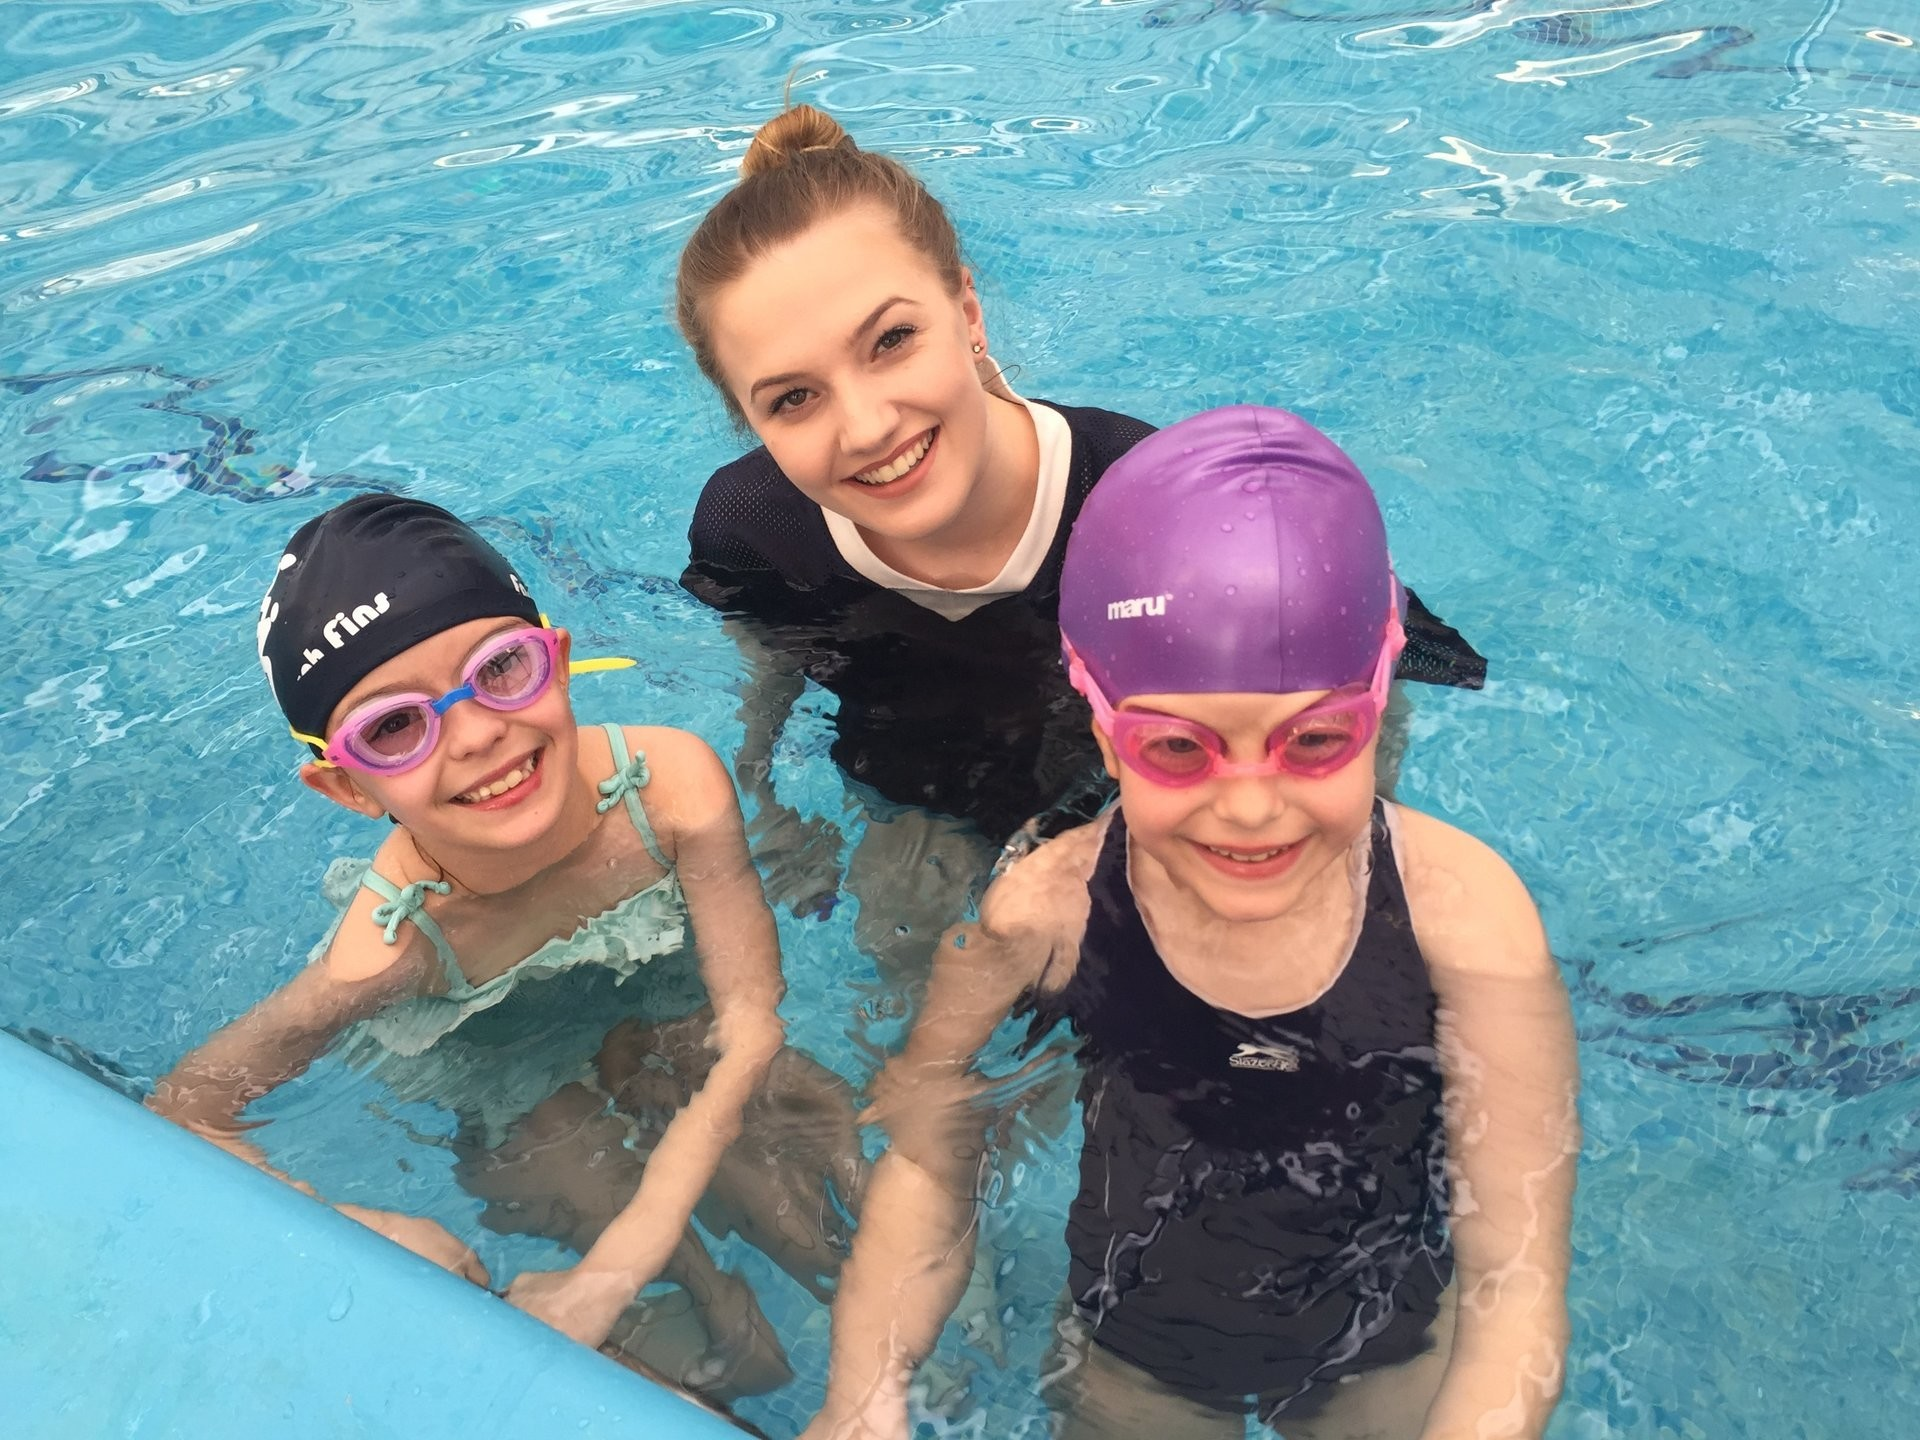 Swimming lessons in private indoor swimming pools